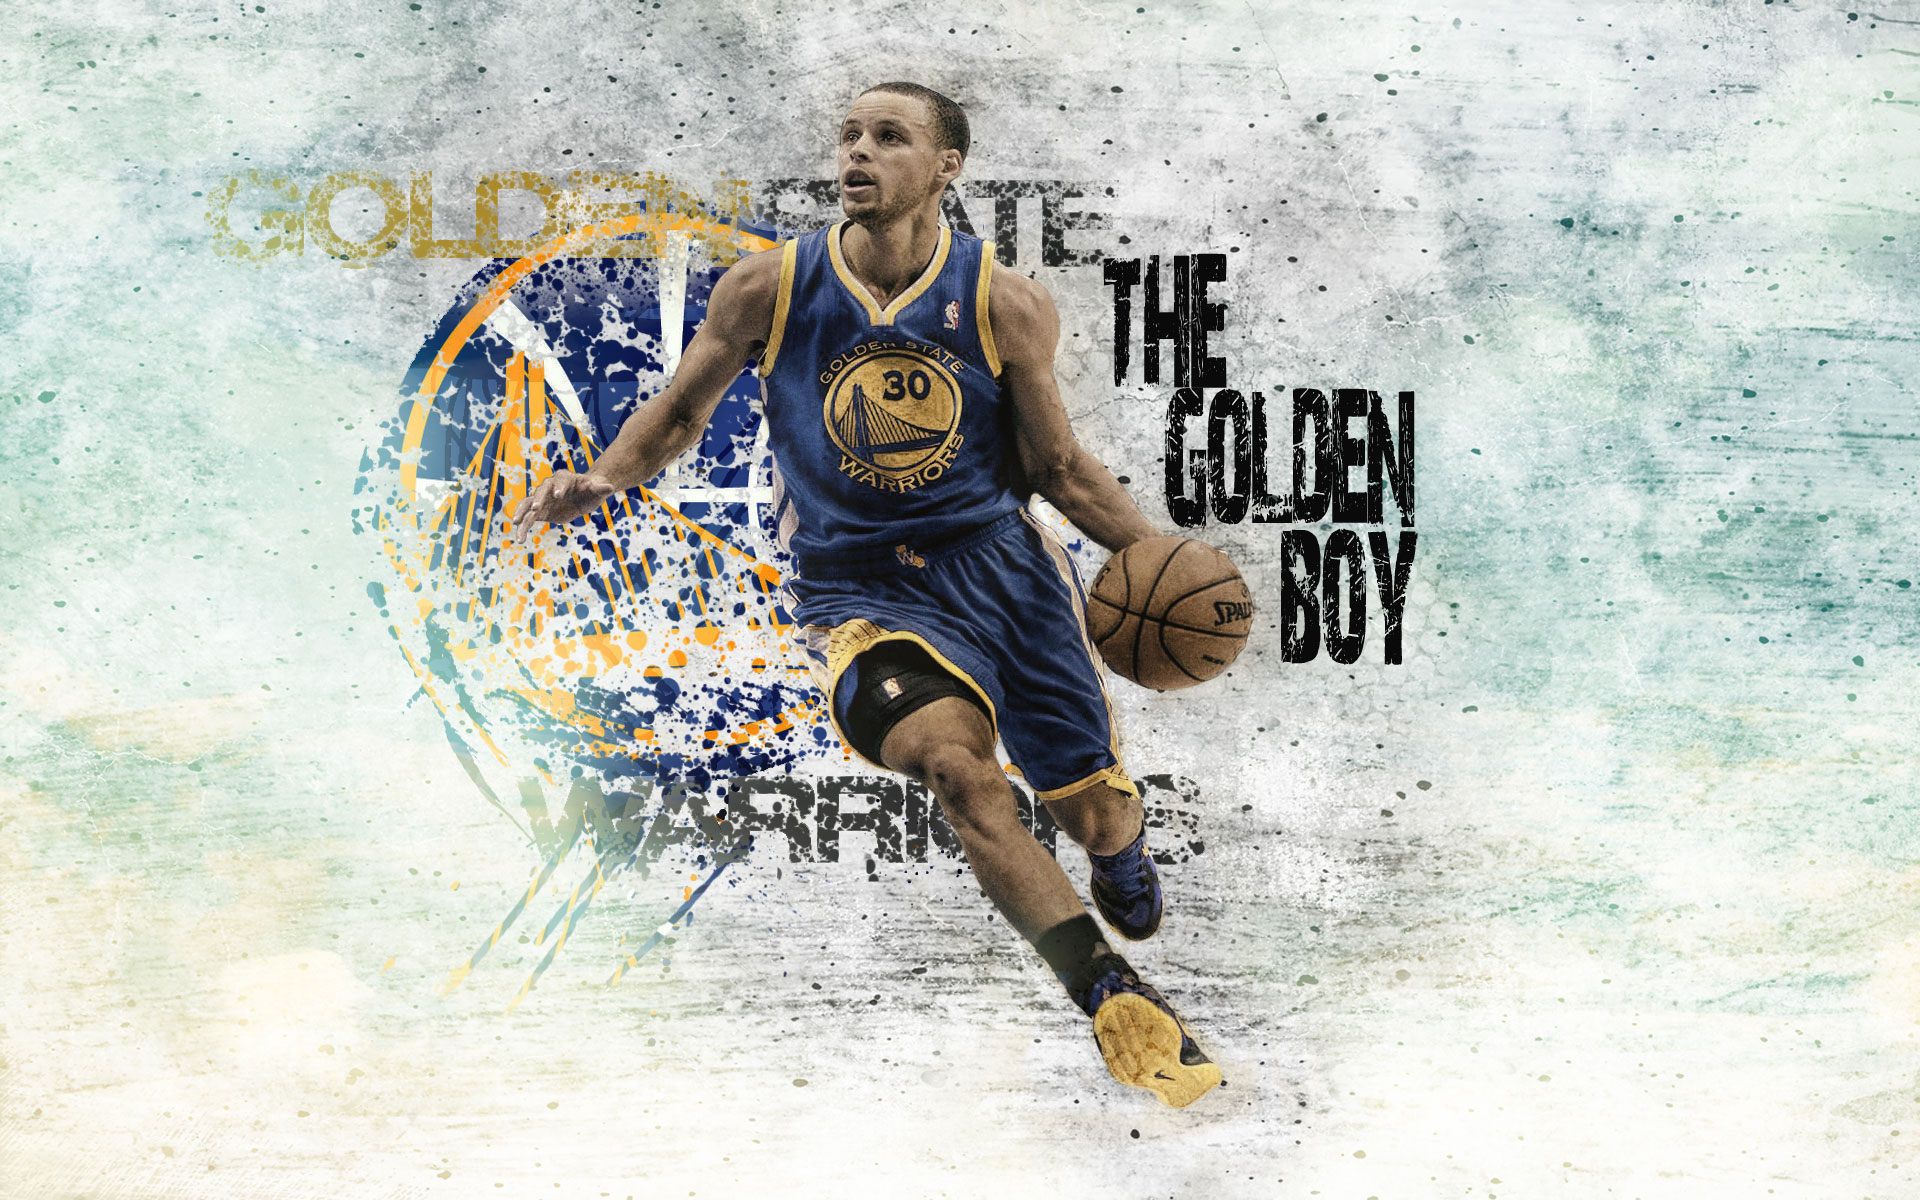 stephen-curry-splash-hd-wallpaper-for-desktop-background-images